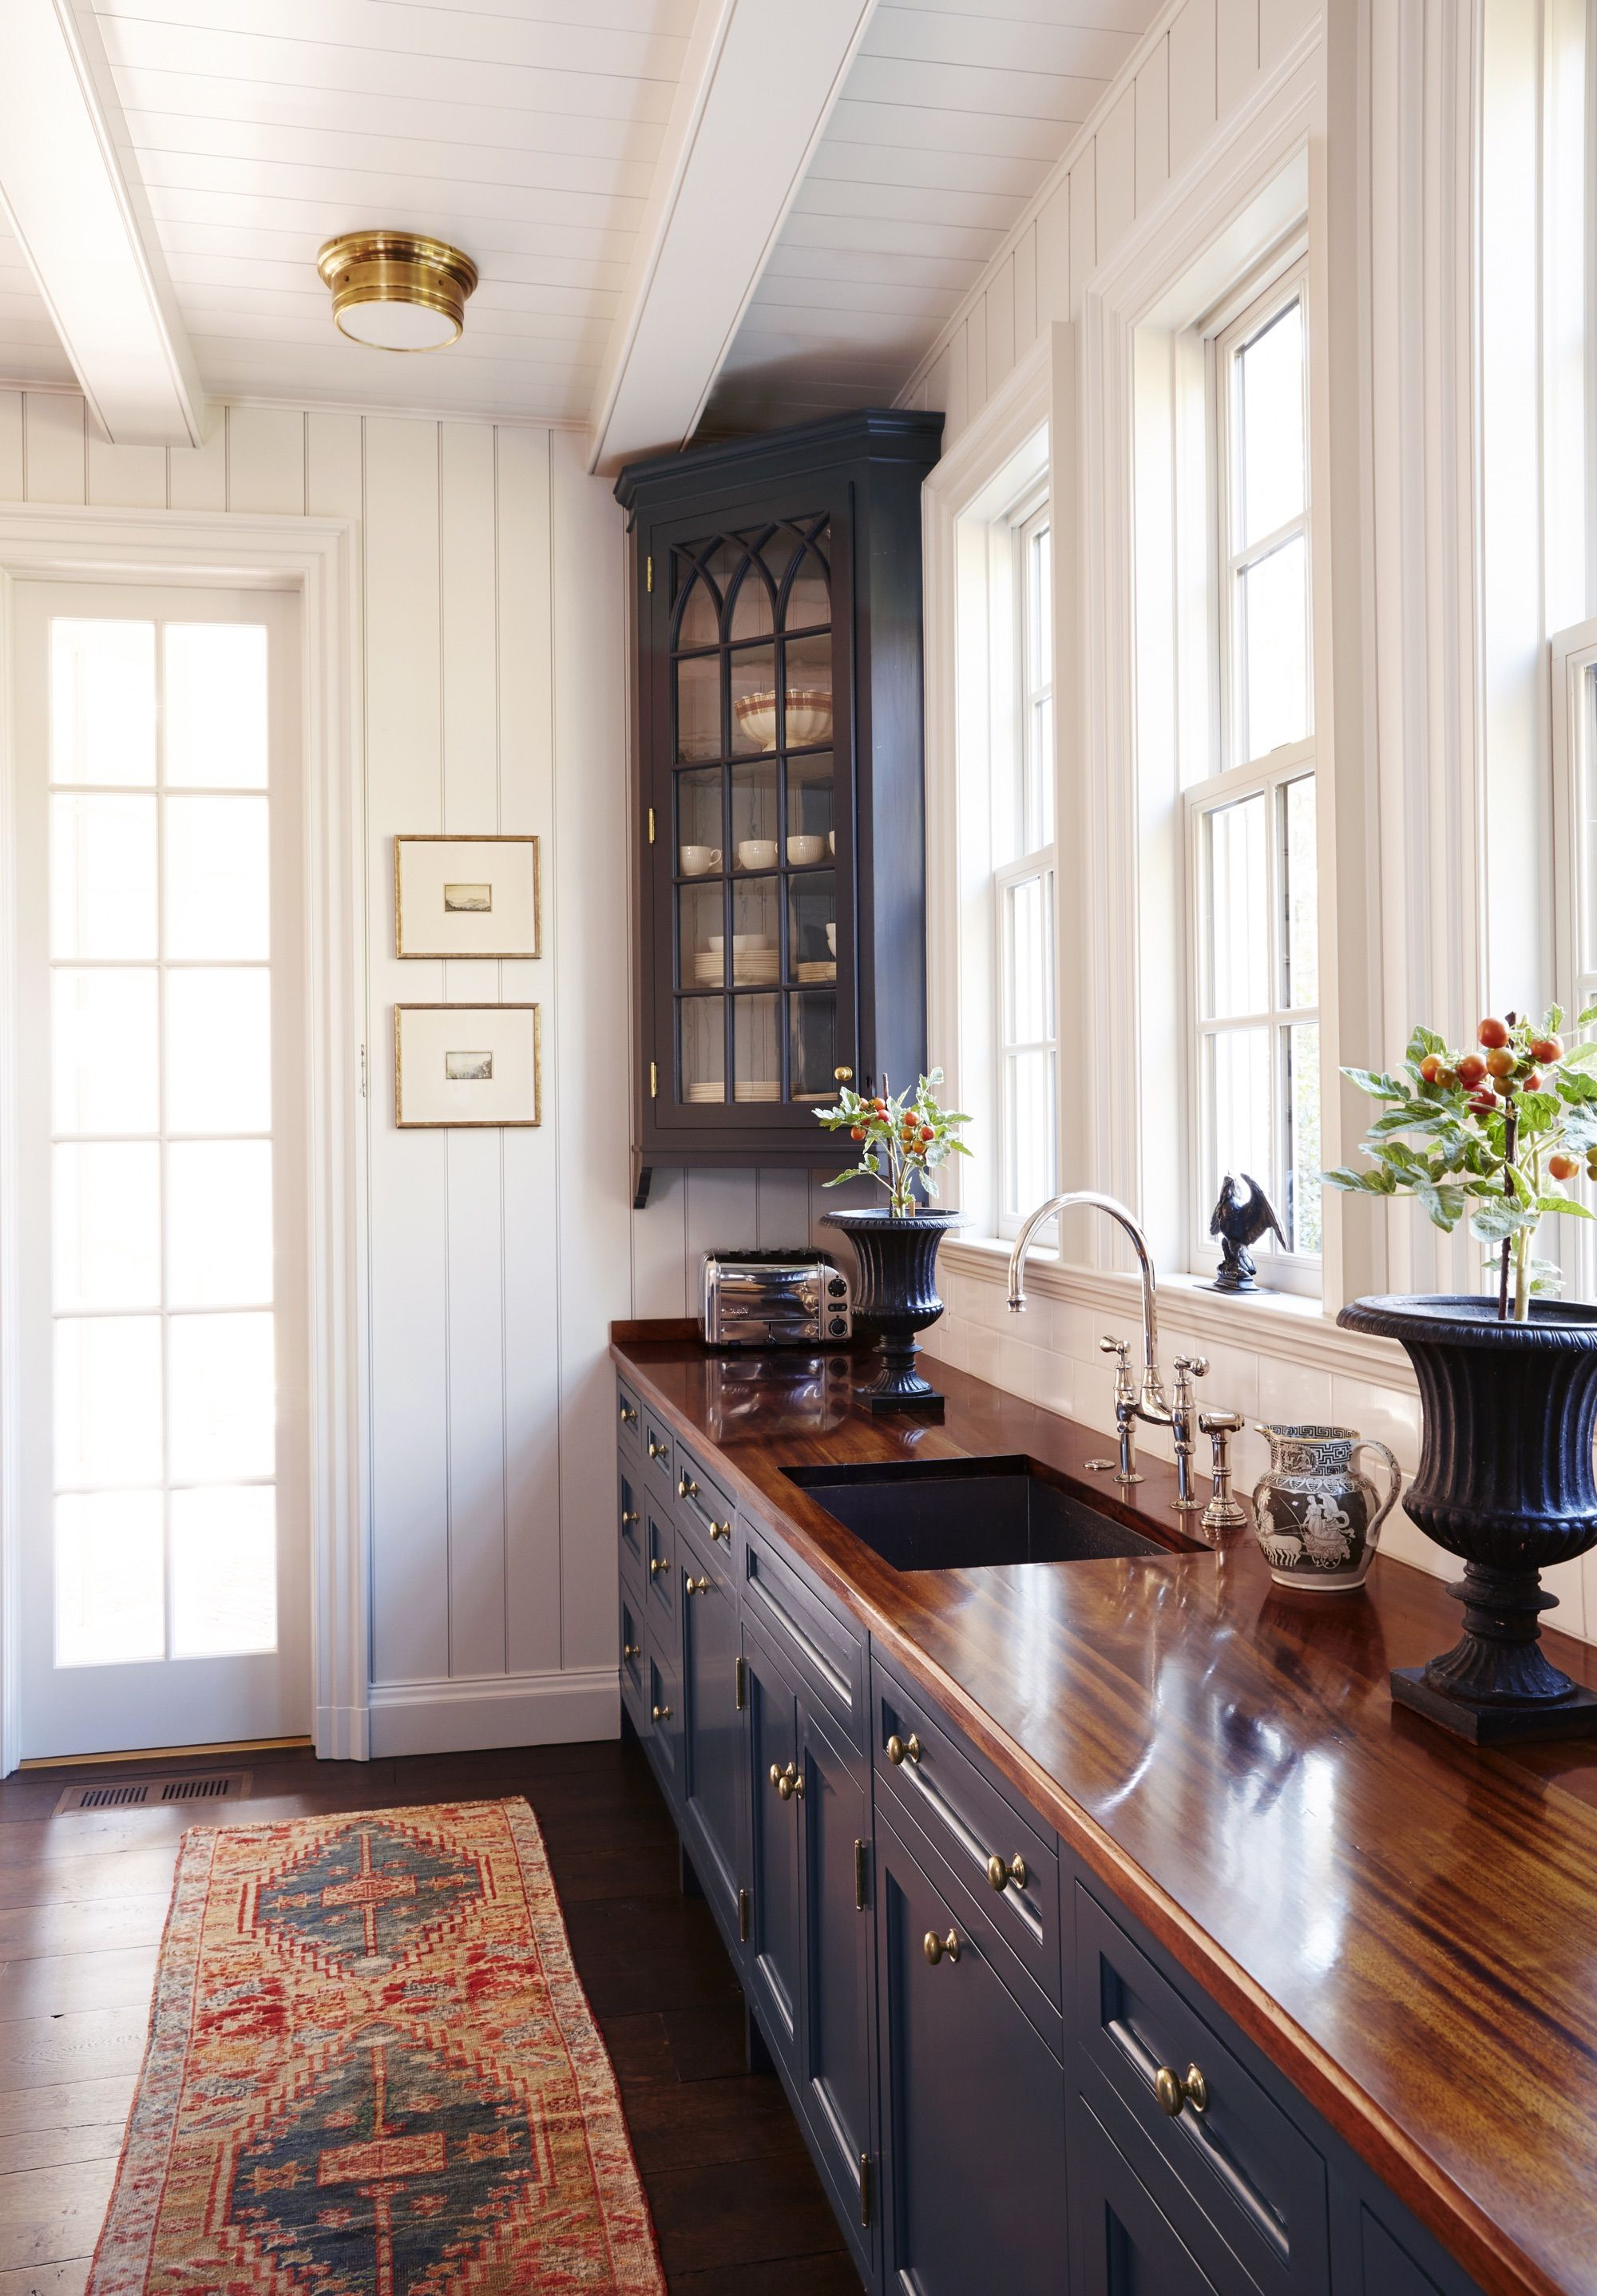 Best Kitchen Gallery: House In Birmingham Home Love Pinterest House Kitchens And of Kitchen Cabinets Pelham Al on cal-ite.com